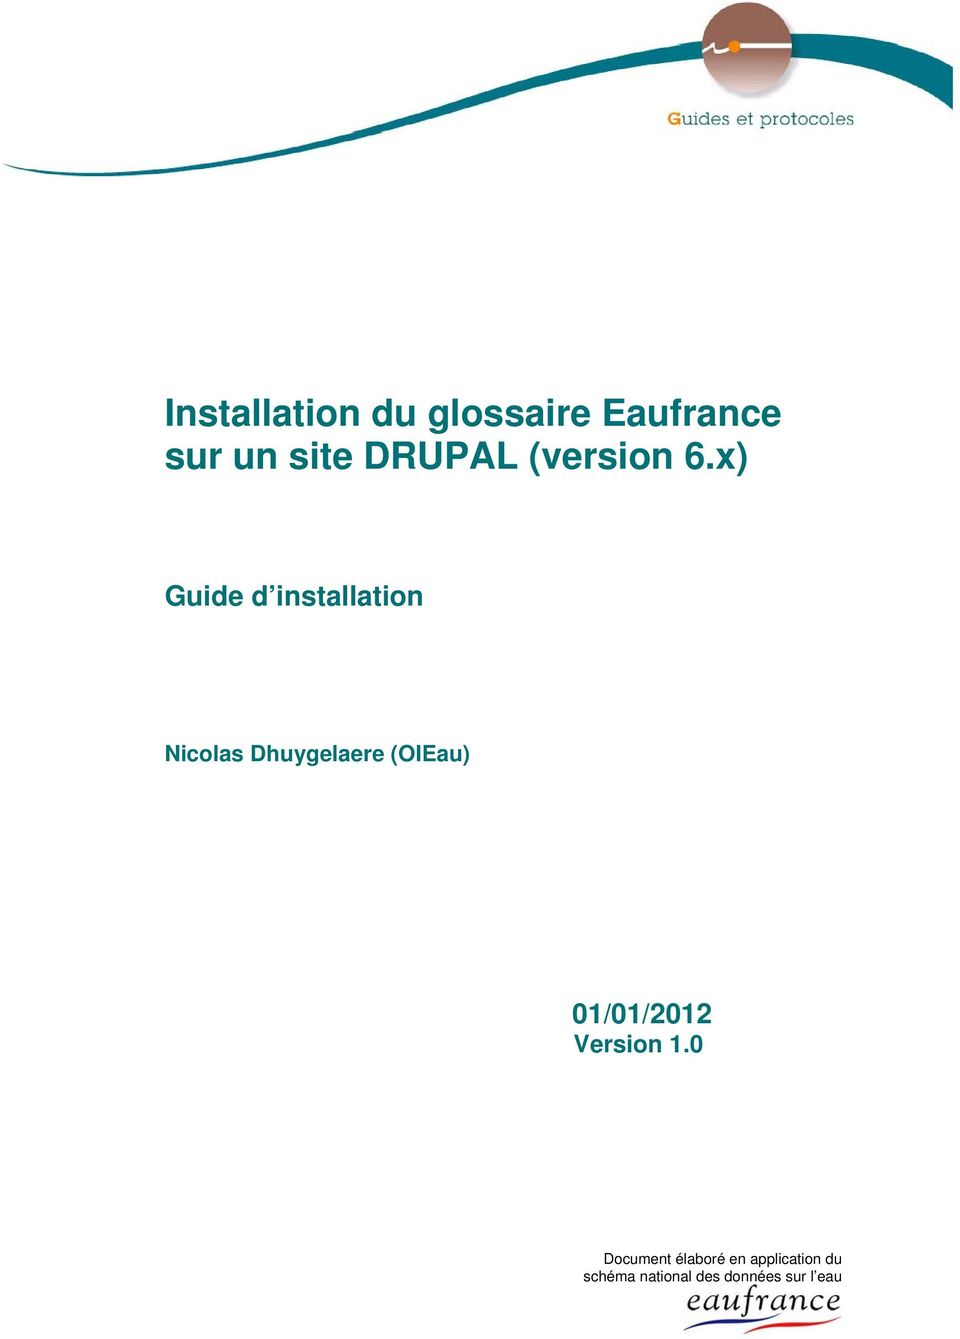 x) Guide d installation Nicolas Dhuygelaere (OIEau)